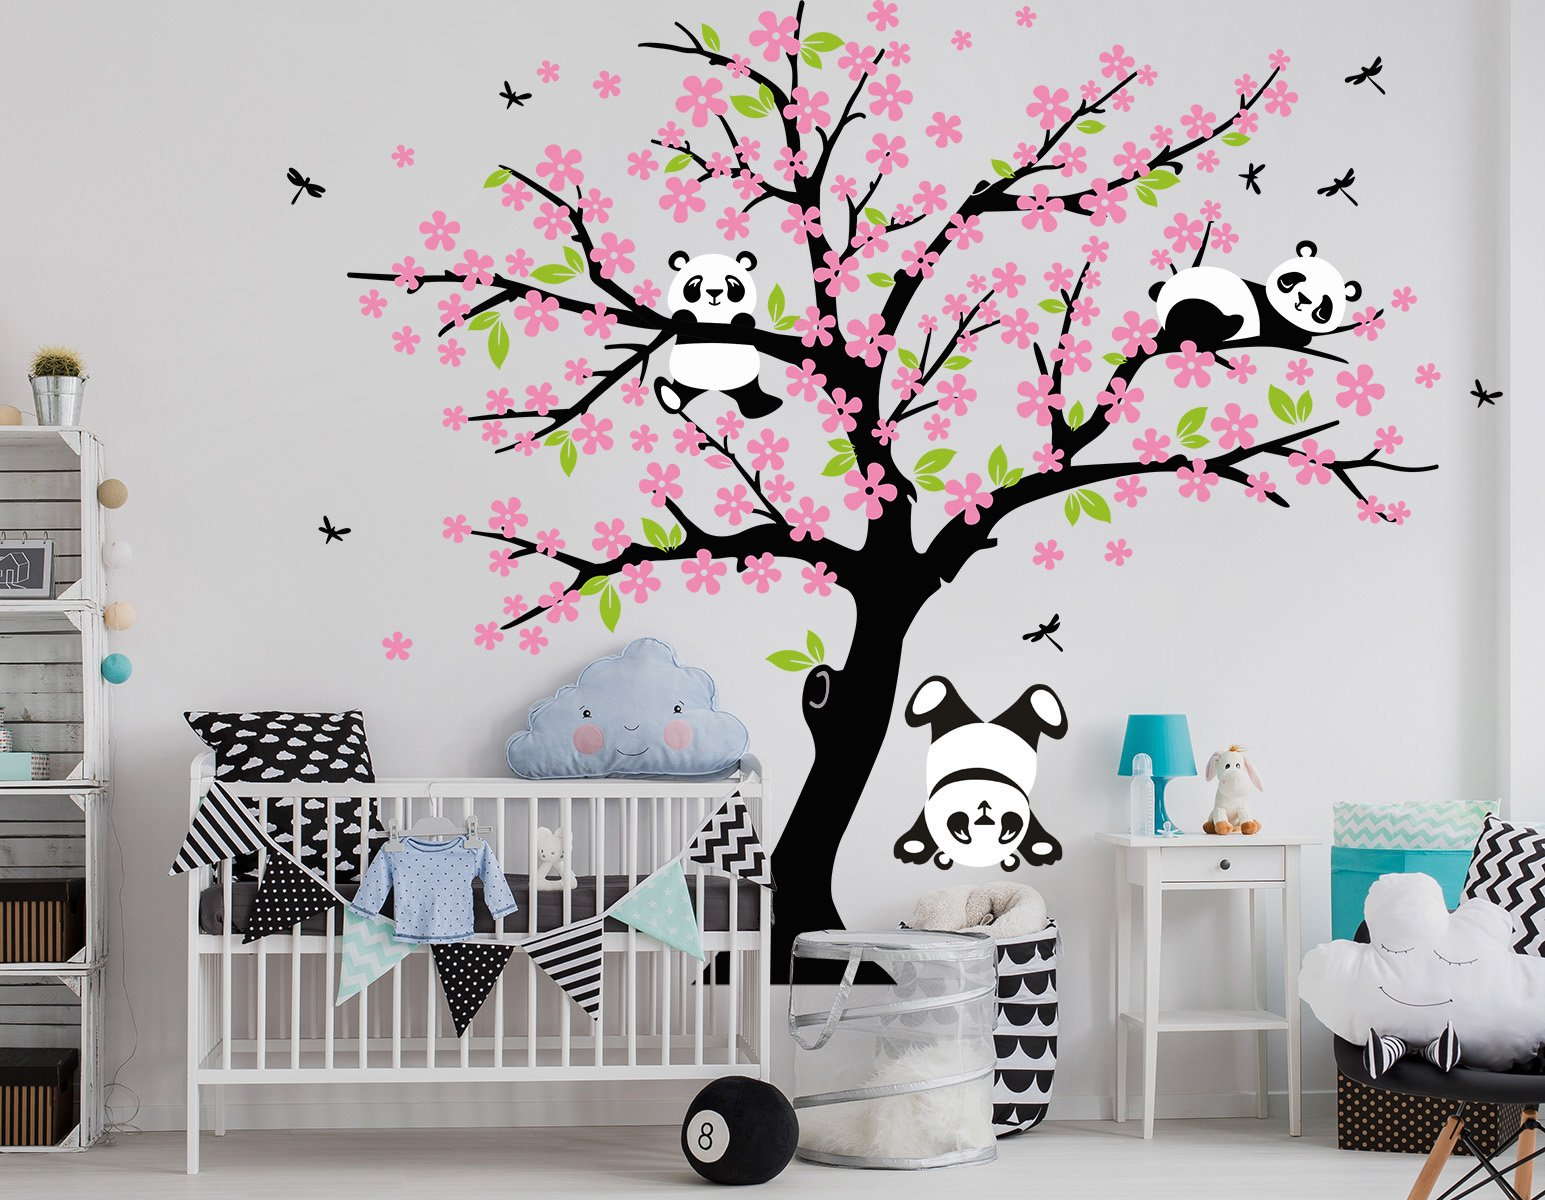 LUCKKYY Three Playful Pandas Bear On Cherry Blossom Tree Wall Decal Tree  Wall Sticker Nursery And Childrenu0027s Room (pink)